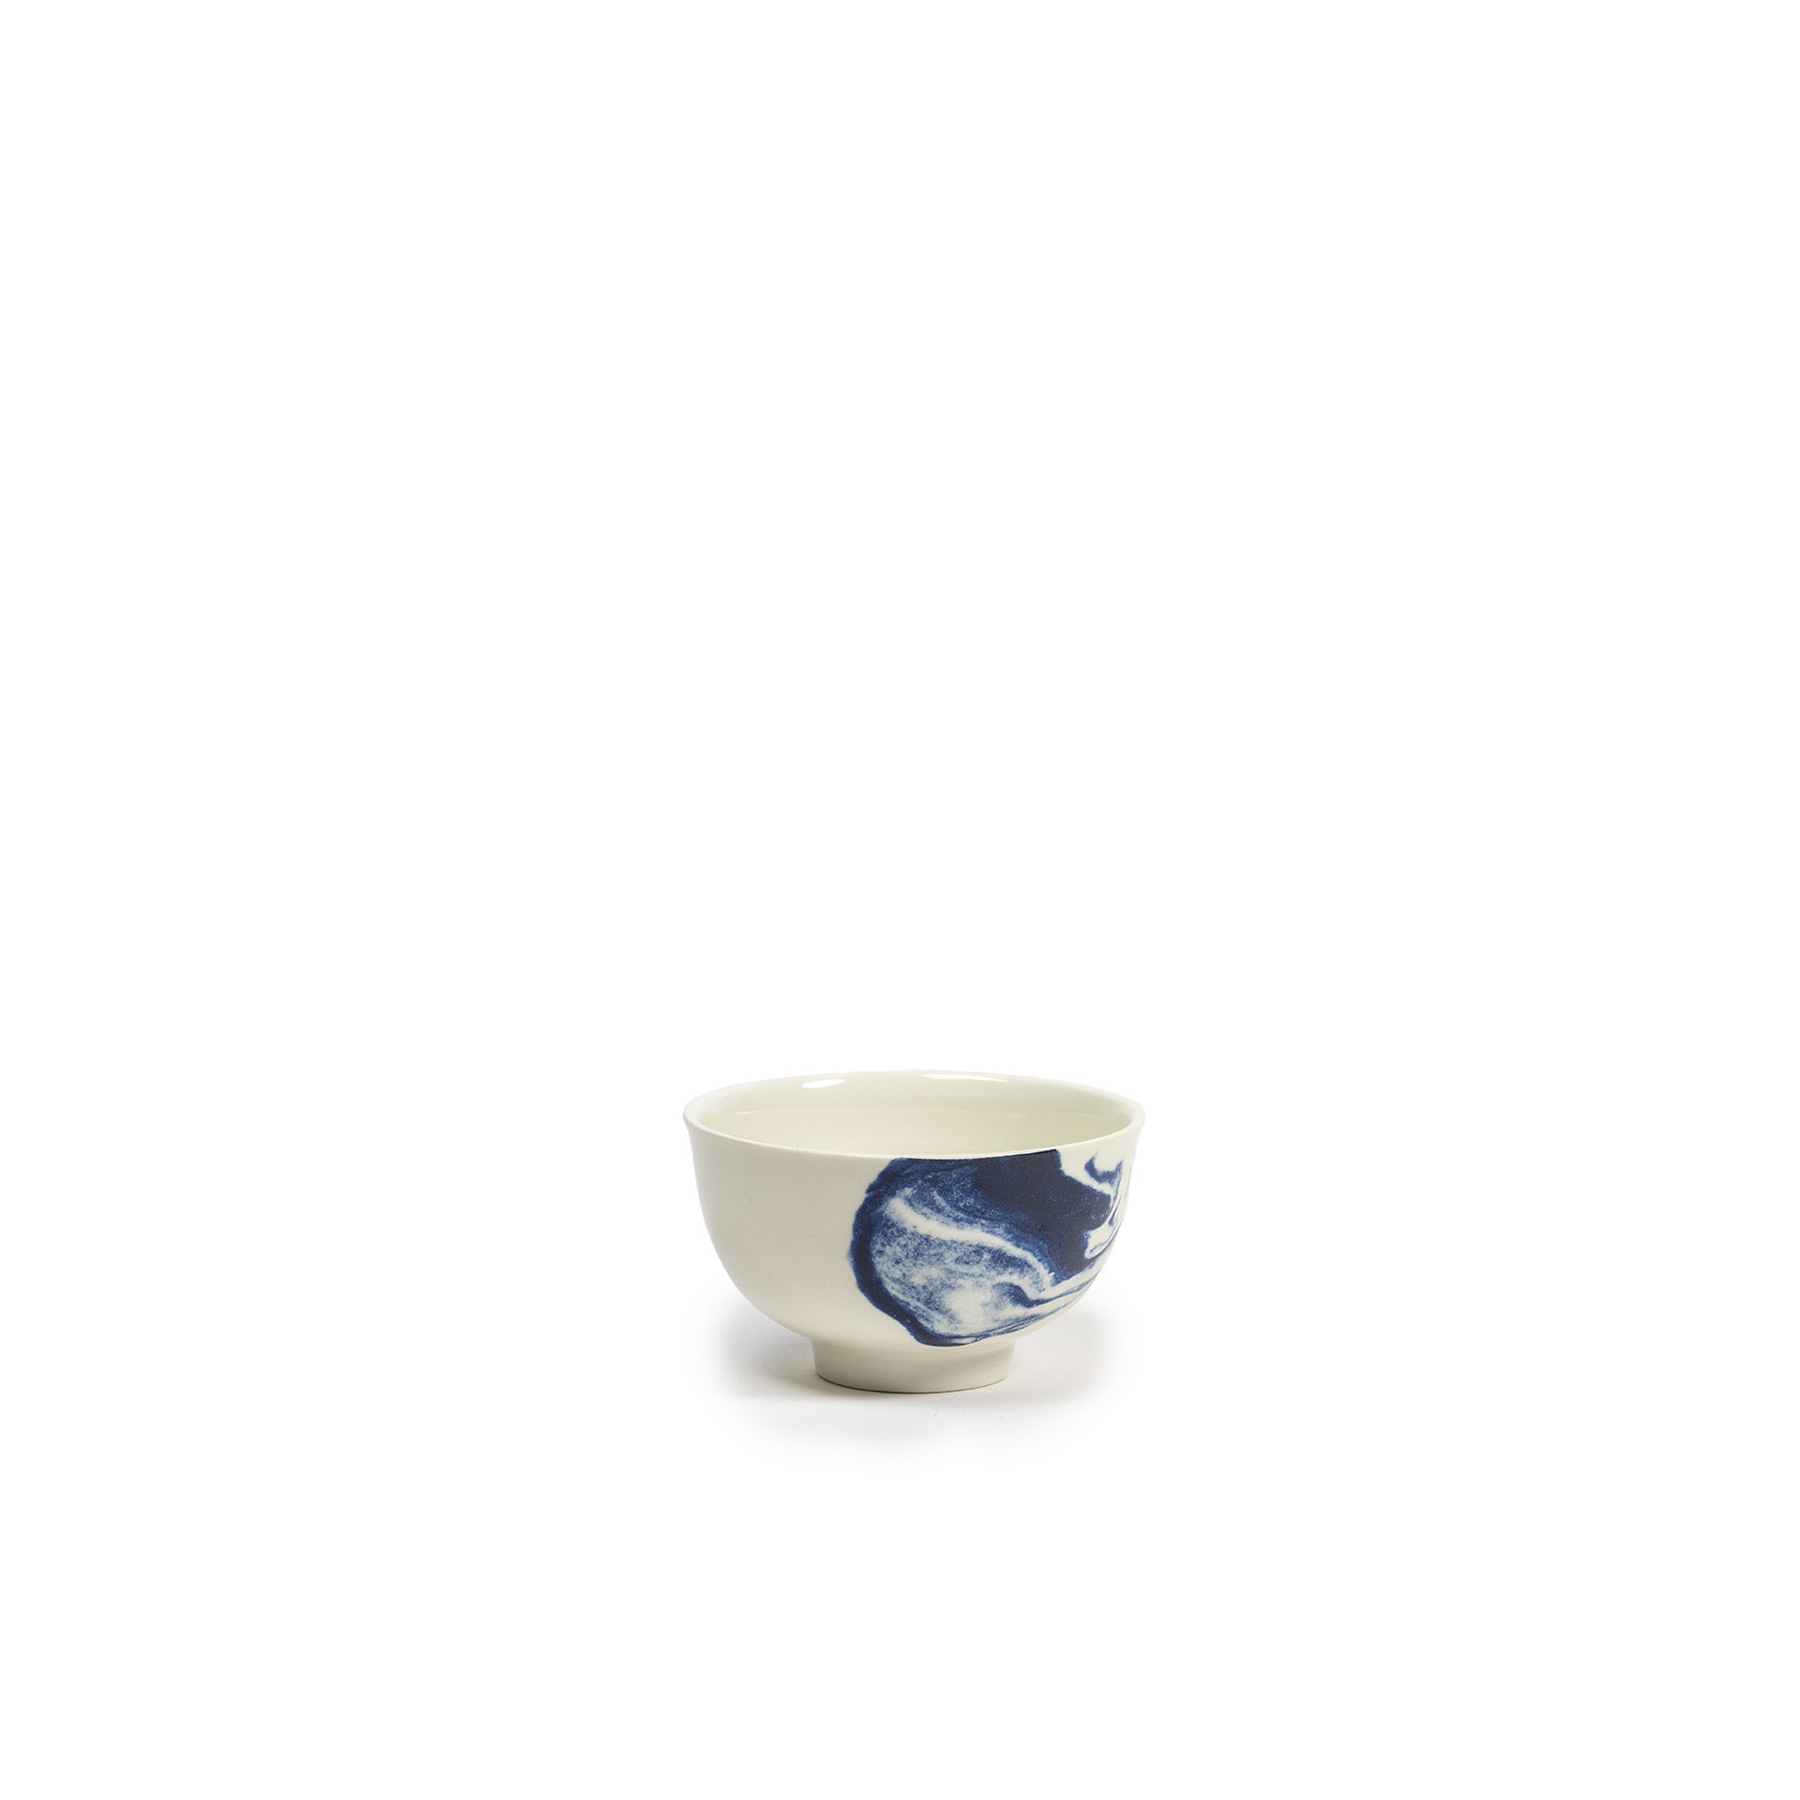 Indigo Storm Handleless Cup - Faye Toogood's range of ceramic designs for 1882 Ltd. celebrates the serendipitous beauty of natural imperfections. Indigo Storm, a new interpretation of traditional creamware forms, draws upon the chance patterns created when pigment added to the slip coating does not fully blend. The whorls and eddies resulting from these experiments, like meteorological formations in miniature, make up the collection's central motifs, appearing on pieces including plates, bowls and cups. Representing a streamlined take on our ceramic heritage, the fine earthenware employs the familiar tones of English Delftware: cream offset with a rich, deep blue. Dishwasher and Microwave safe.  | Matter of Stuff